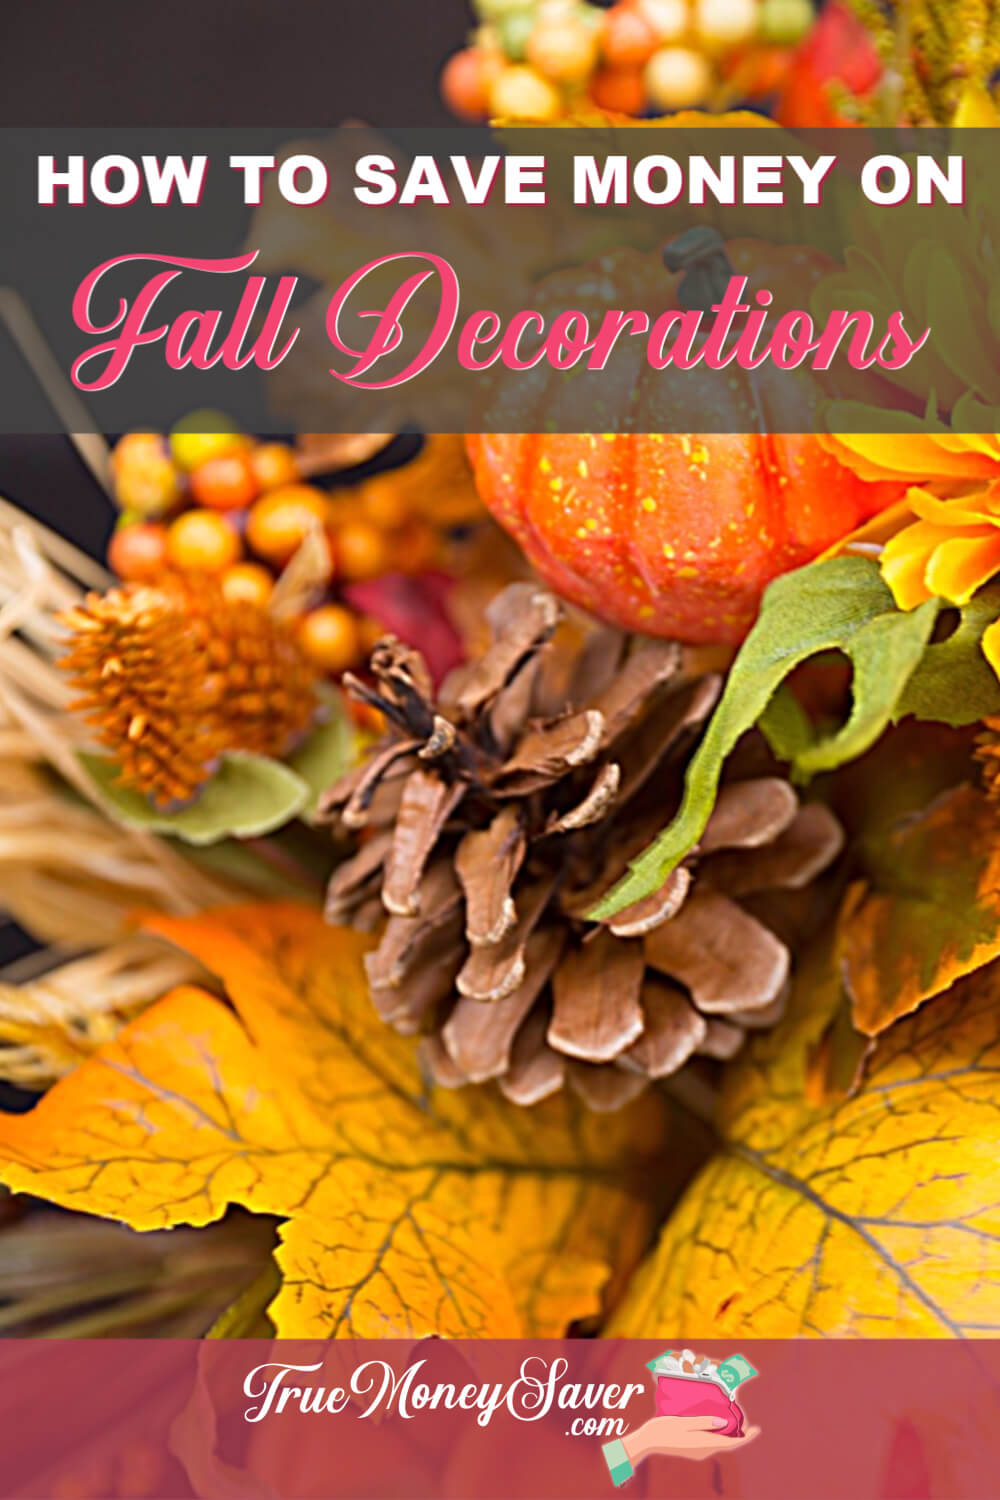 Fall decor can be really expensive, but don\'t let that stop you! Start with these tips to save money on the fall look you want! #truecouponing #fall #falldecor #diy #savingmoney